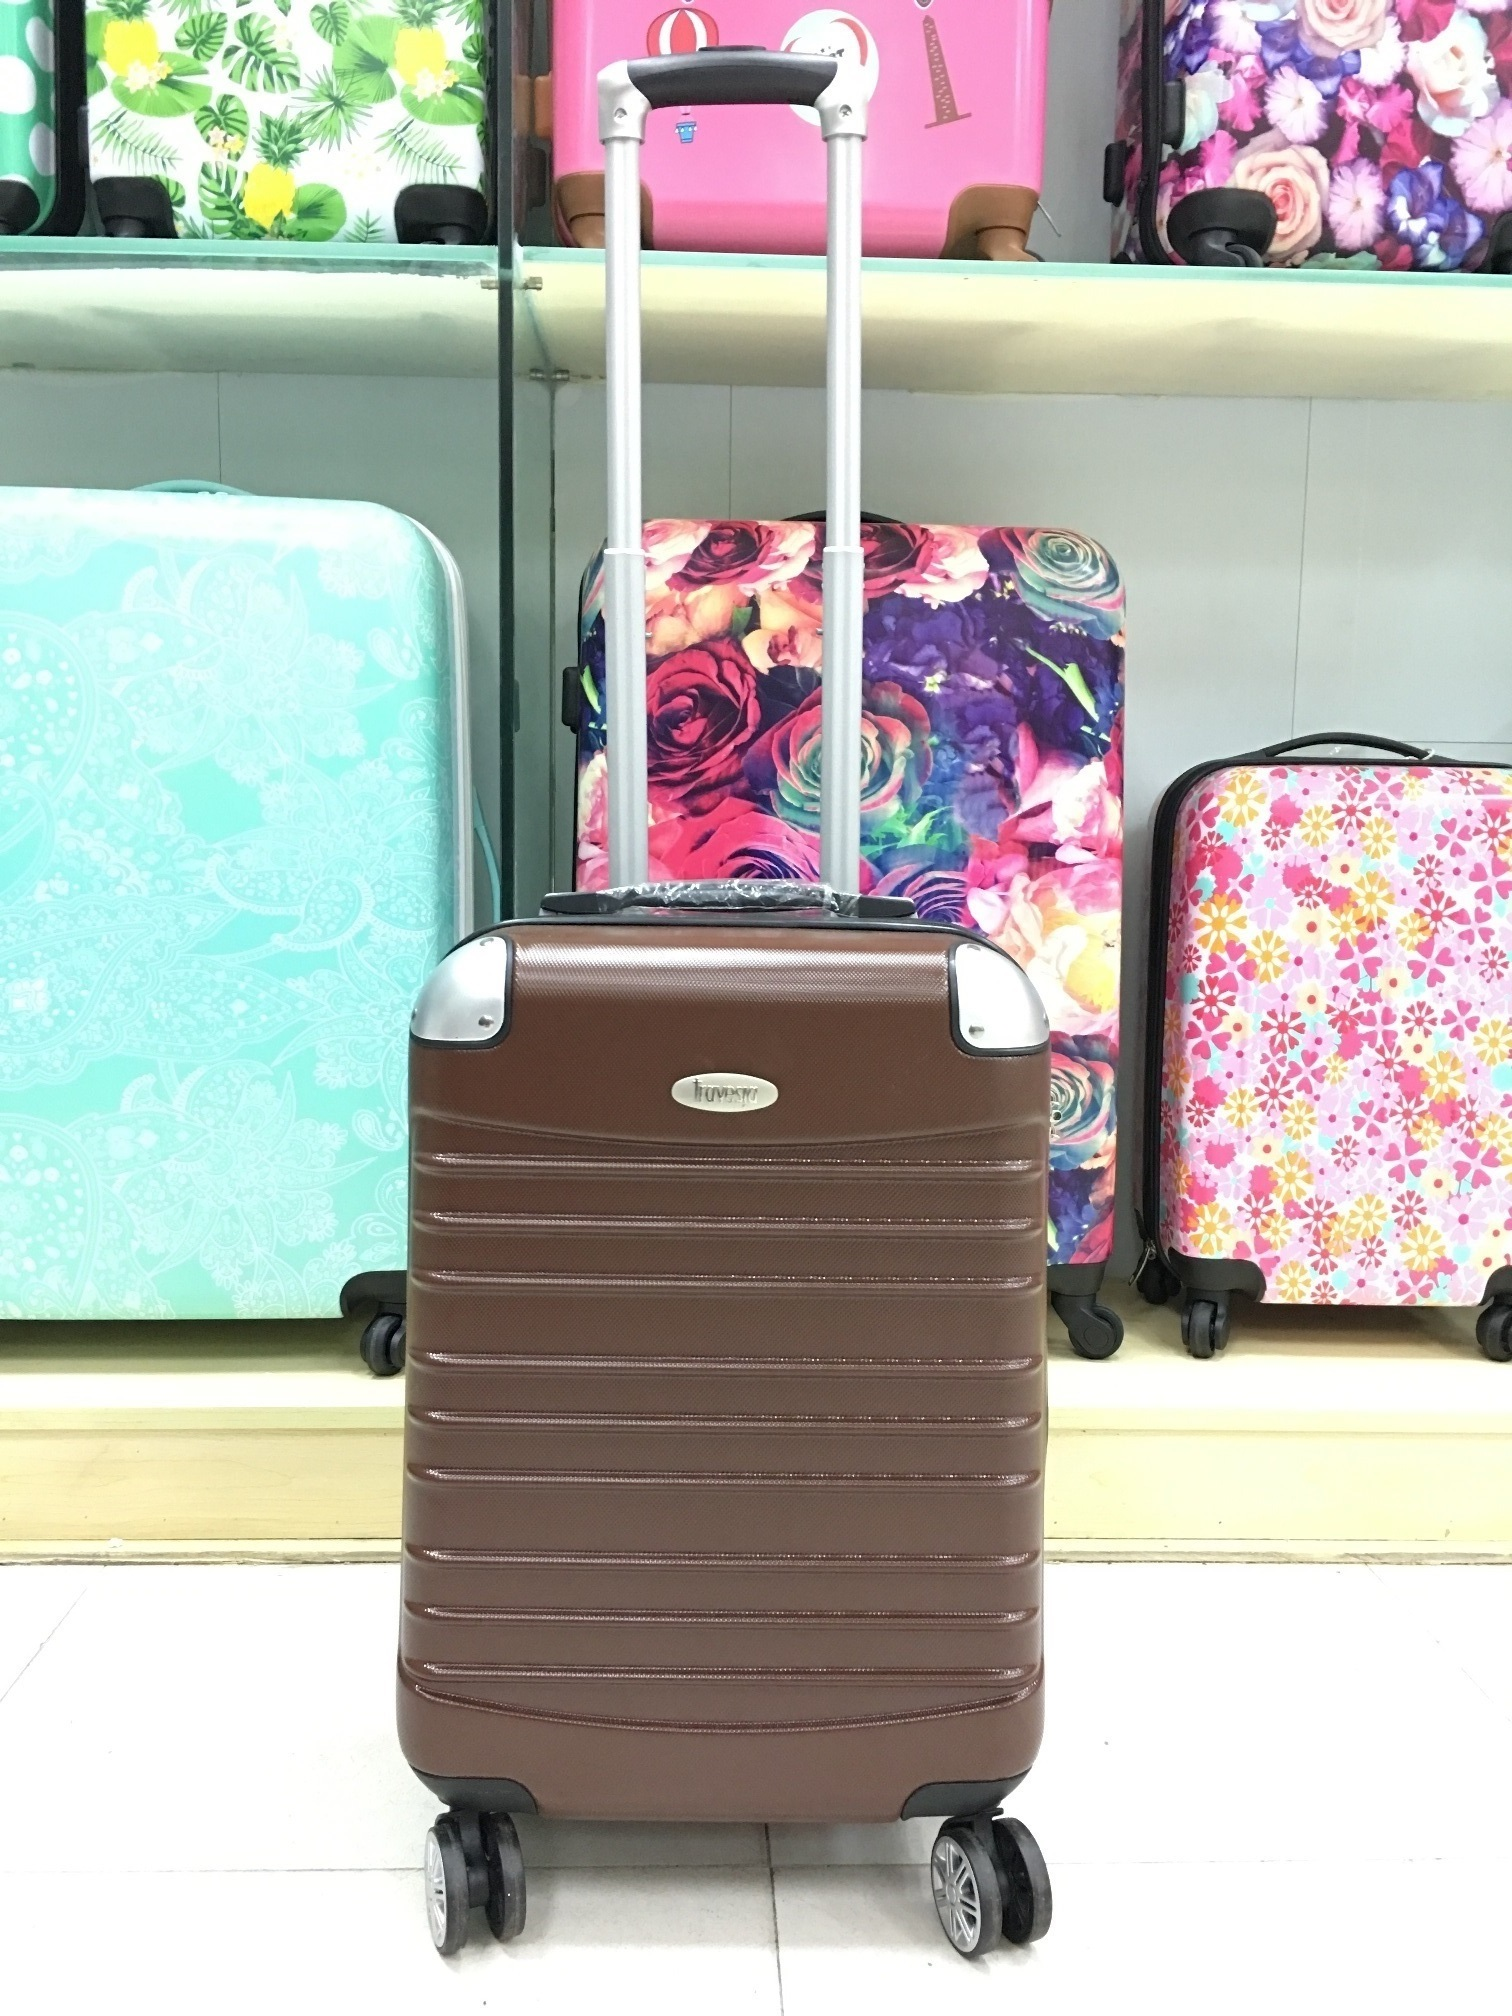 yanteng cheap carry on luggage in brown color